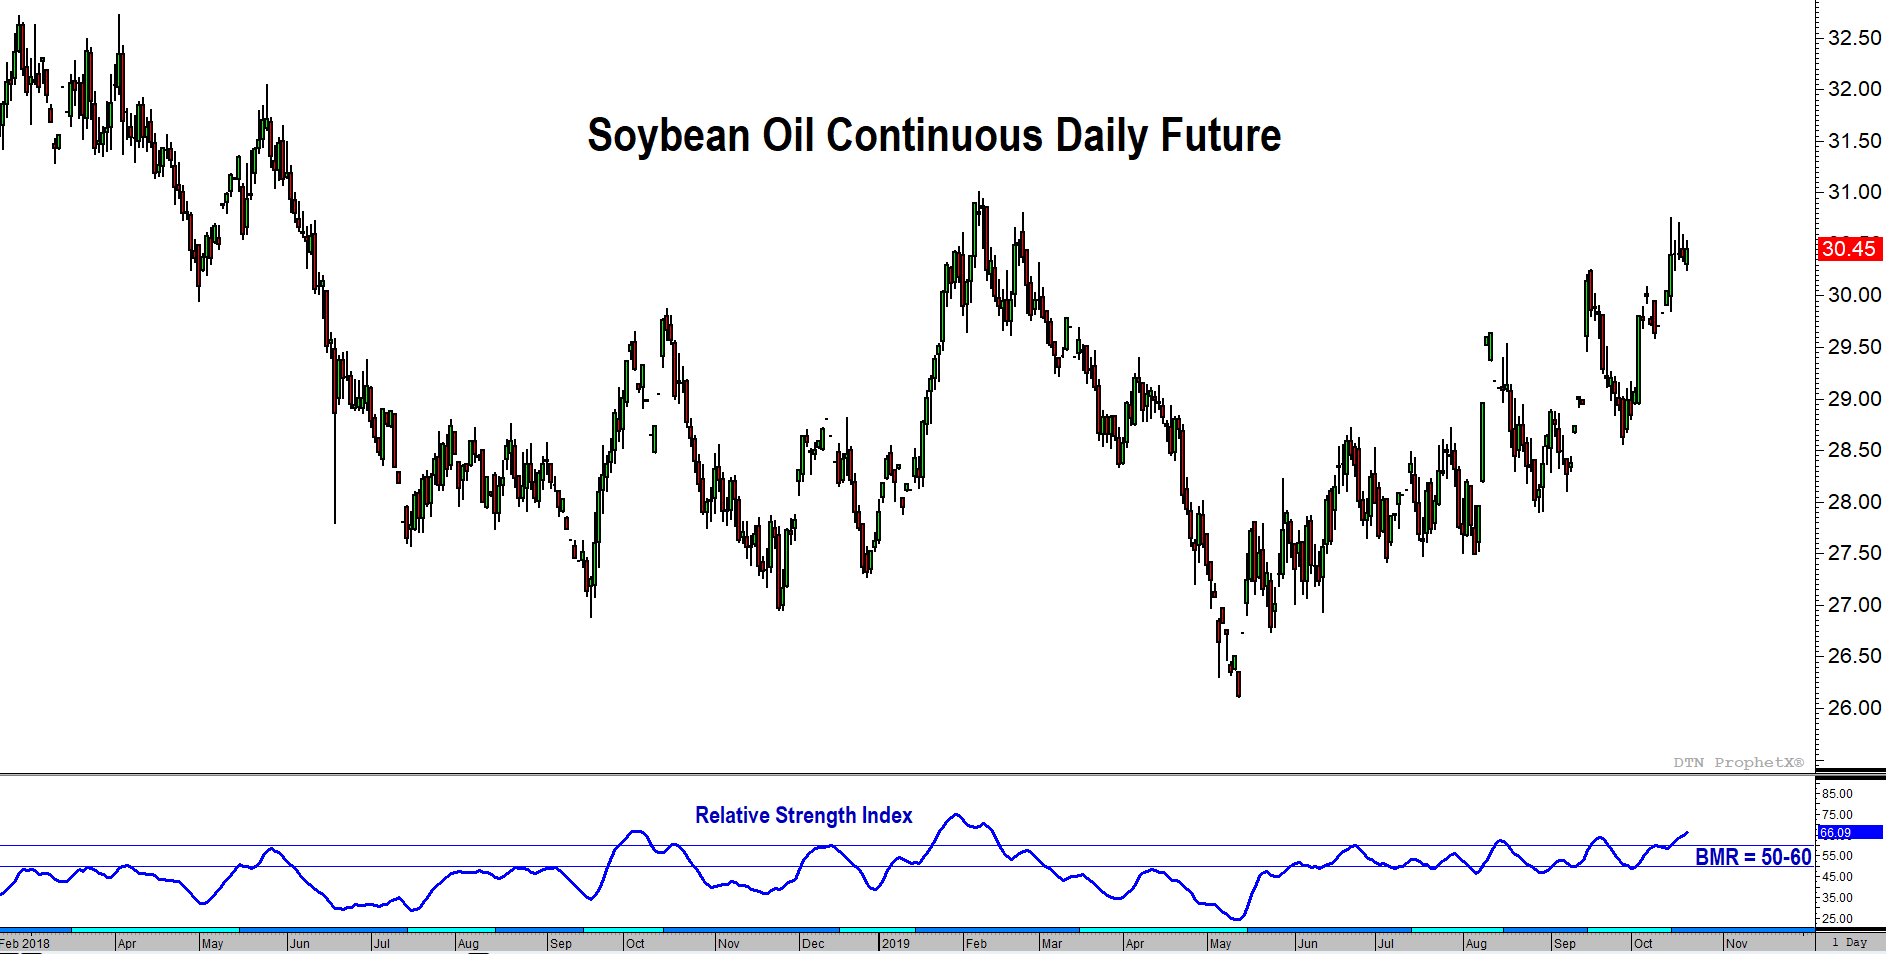 December Soybean Oil Futures » Trilateral Inc.